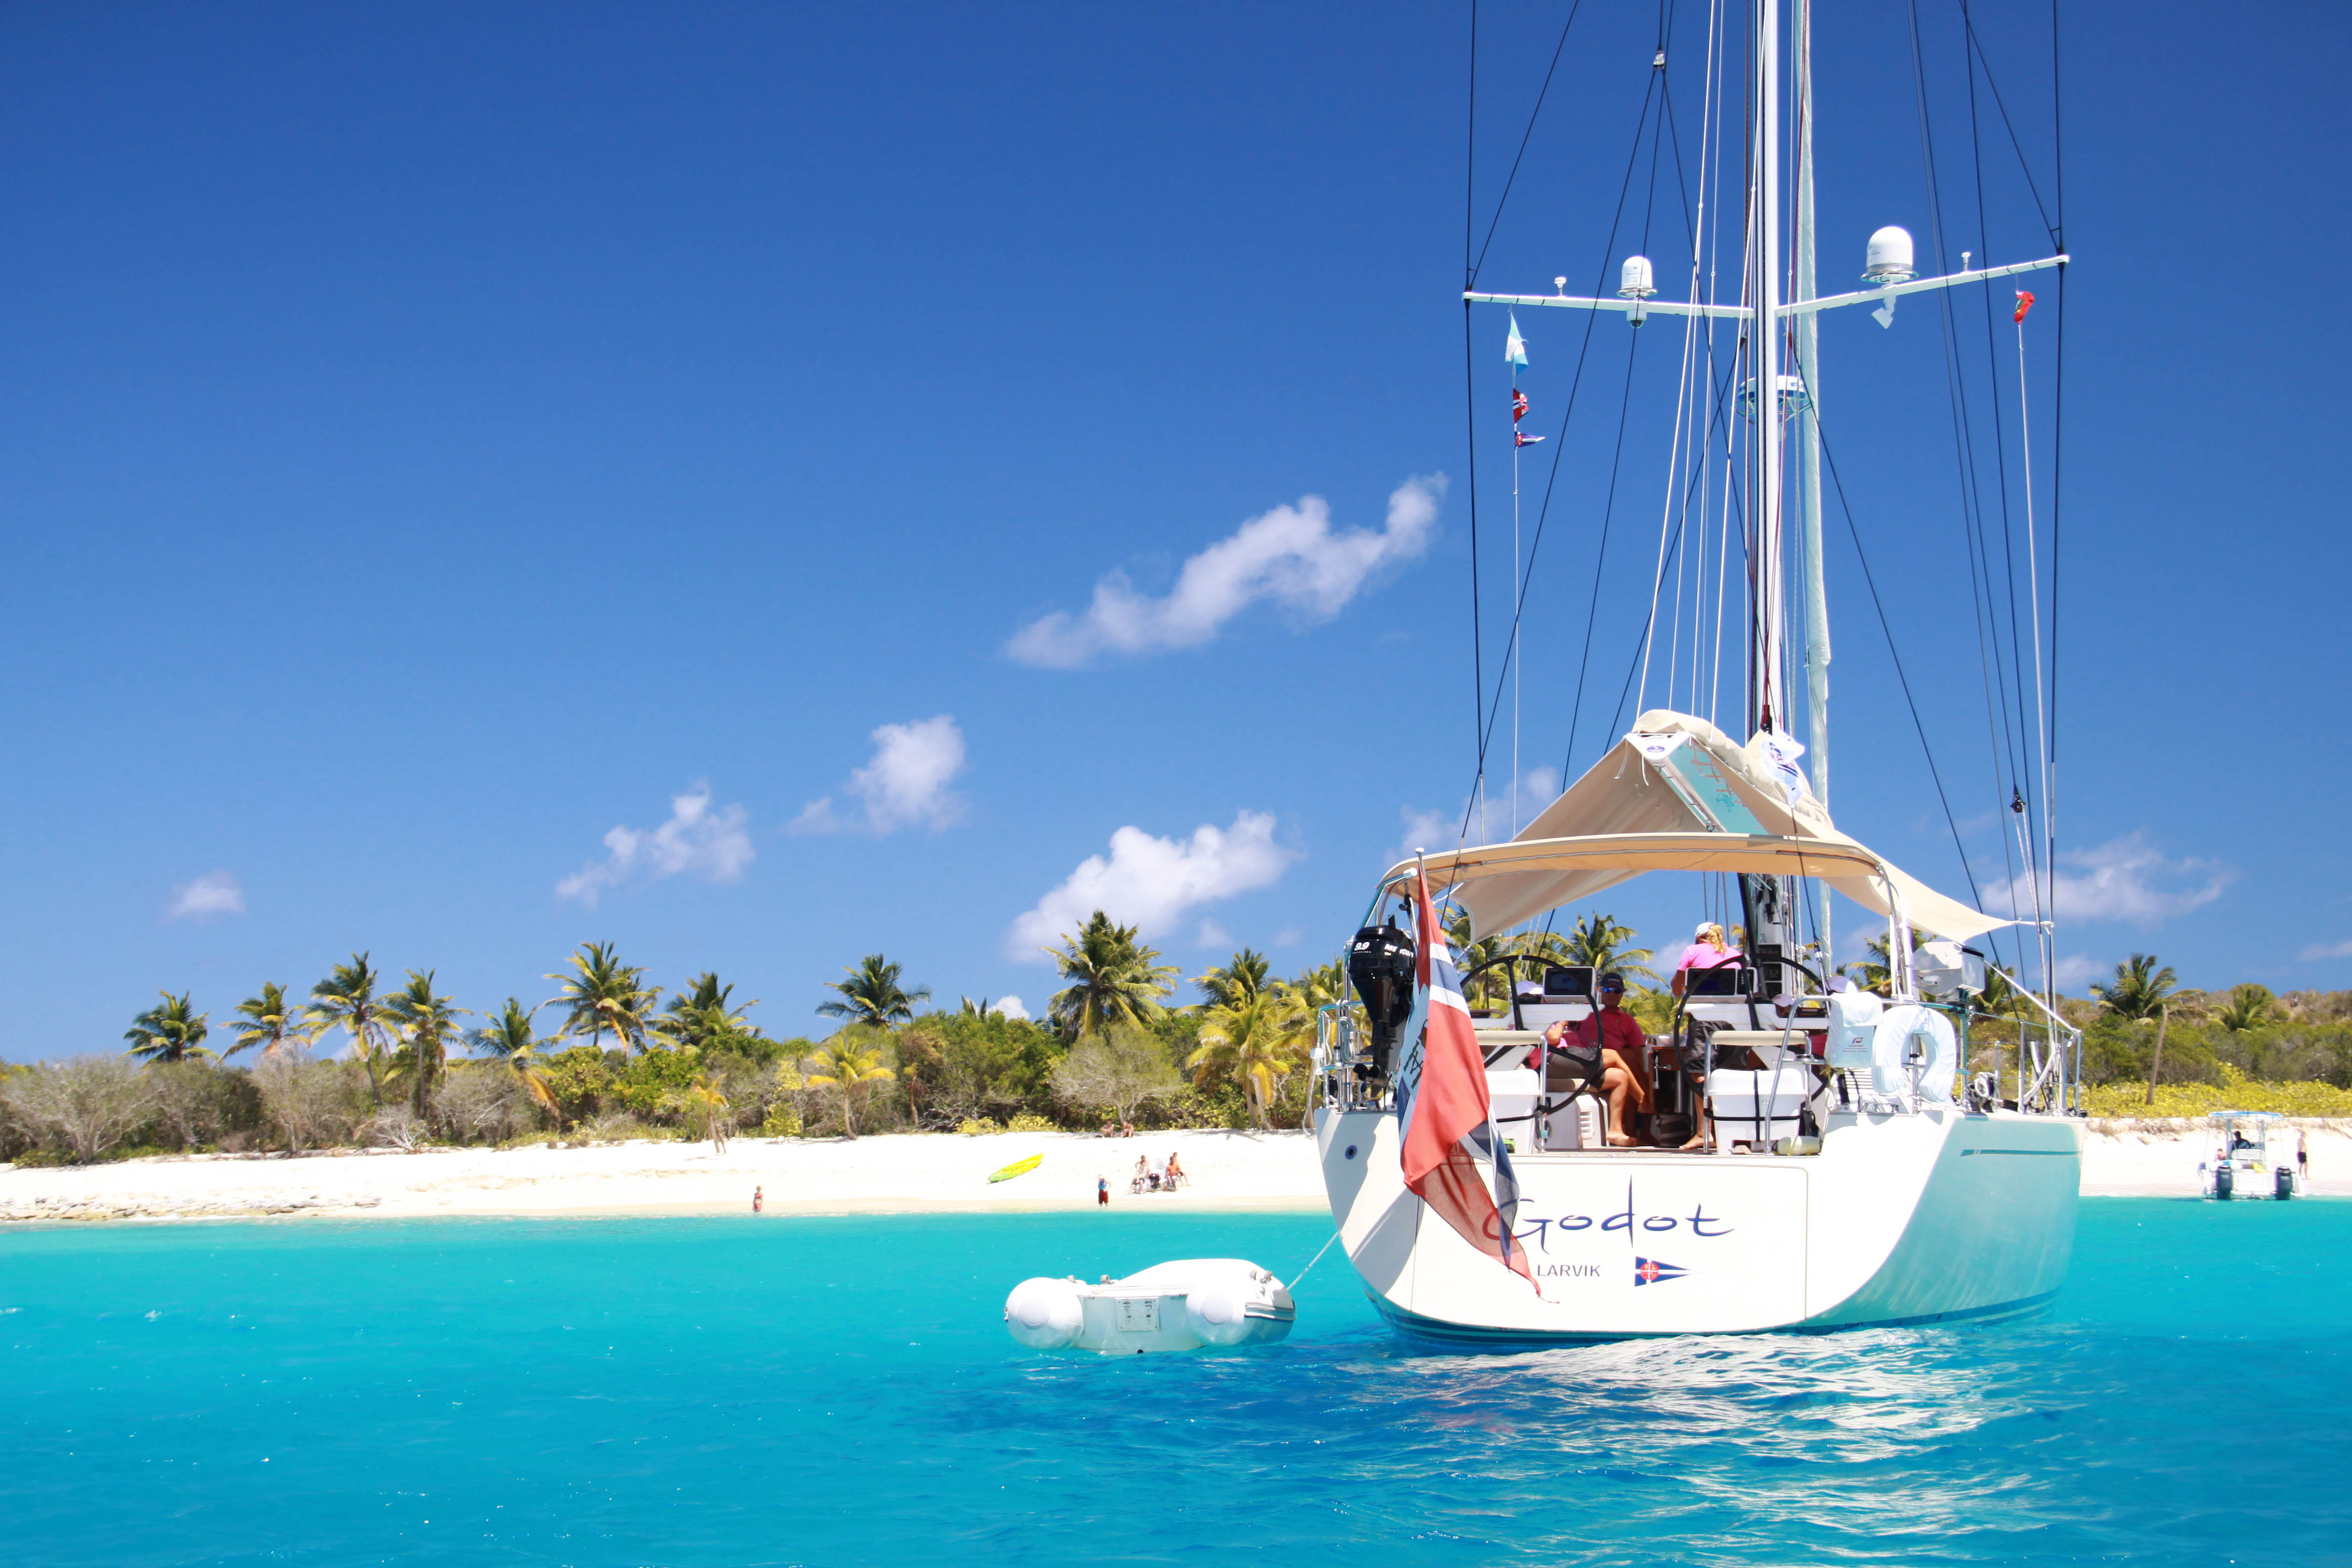 Sailboats In The Caribbean: Stunning Sailing Yacht Swan 66 GODOT Anchored Off Sandy